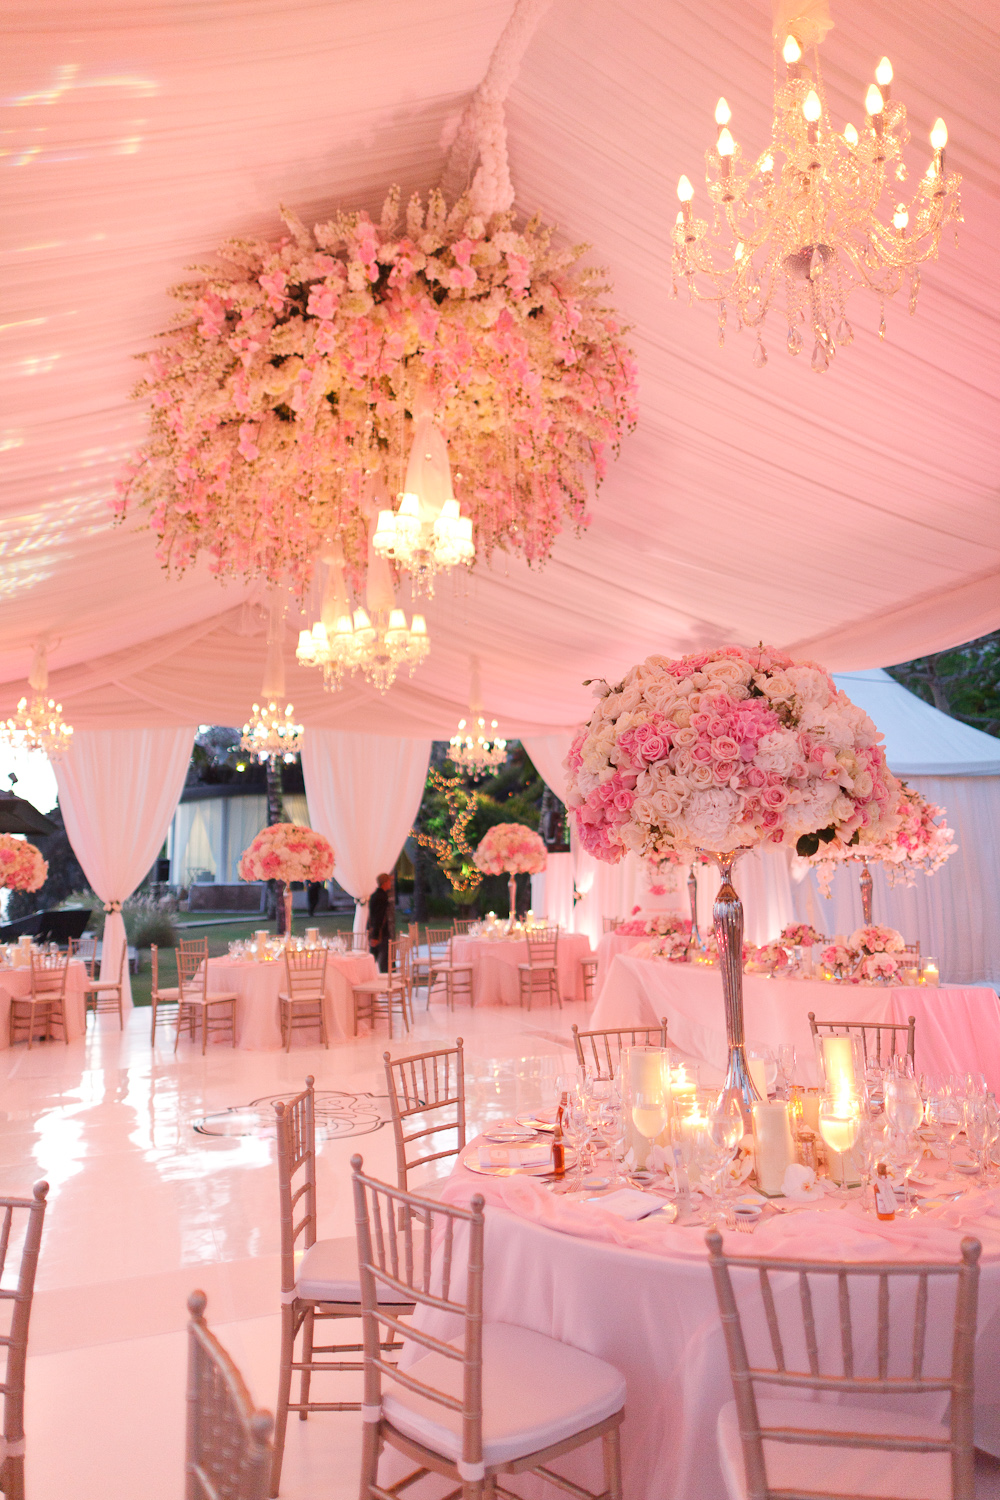 Wedding Drapes How To Add Romance To Your Event Inside